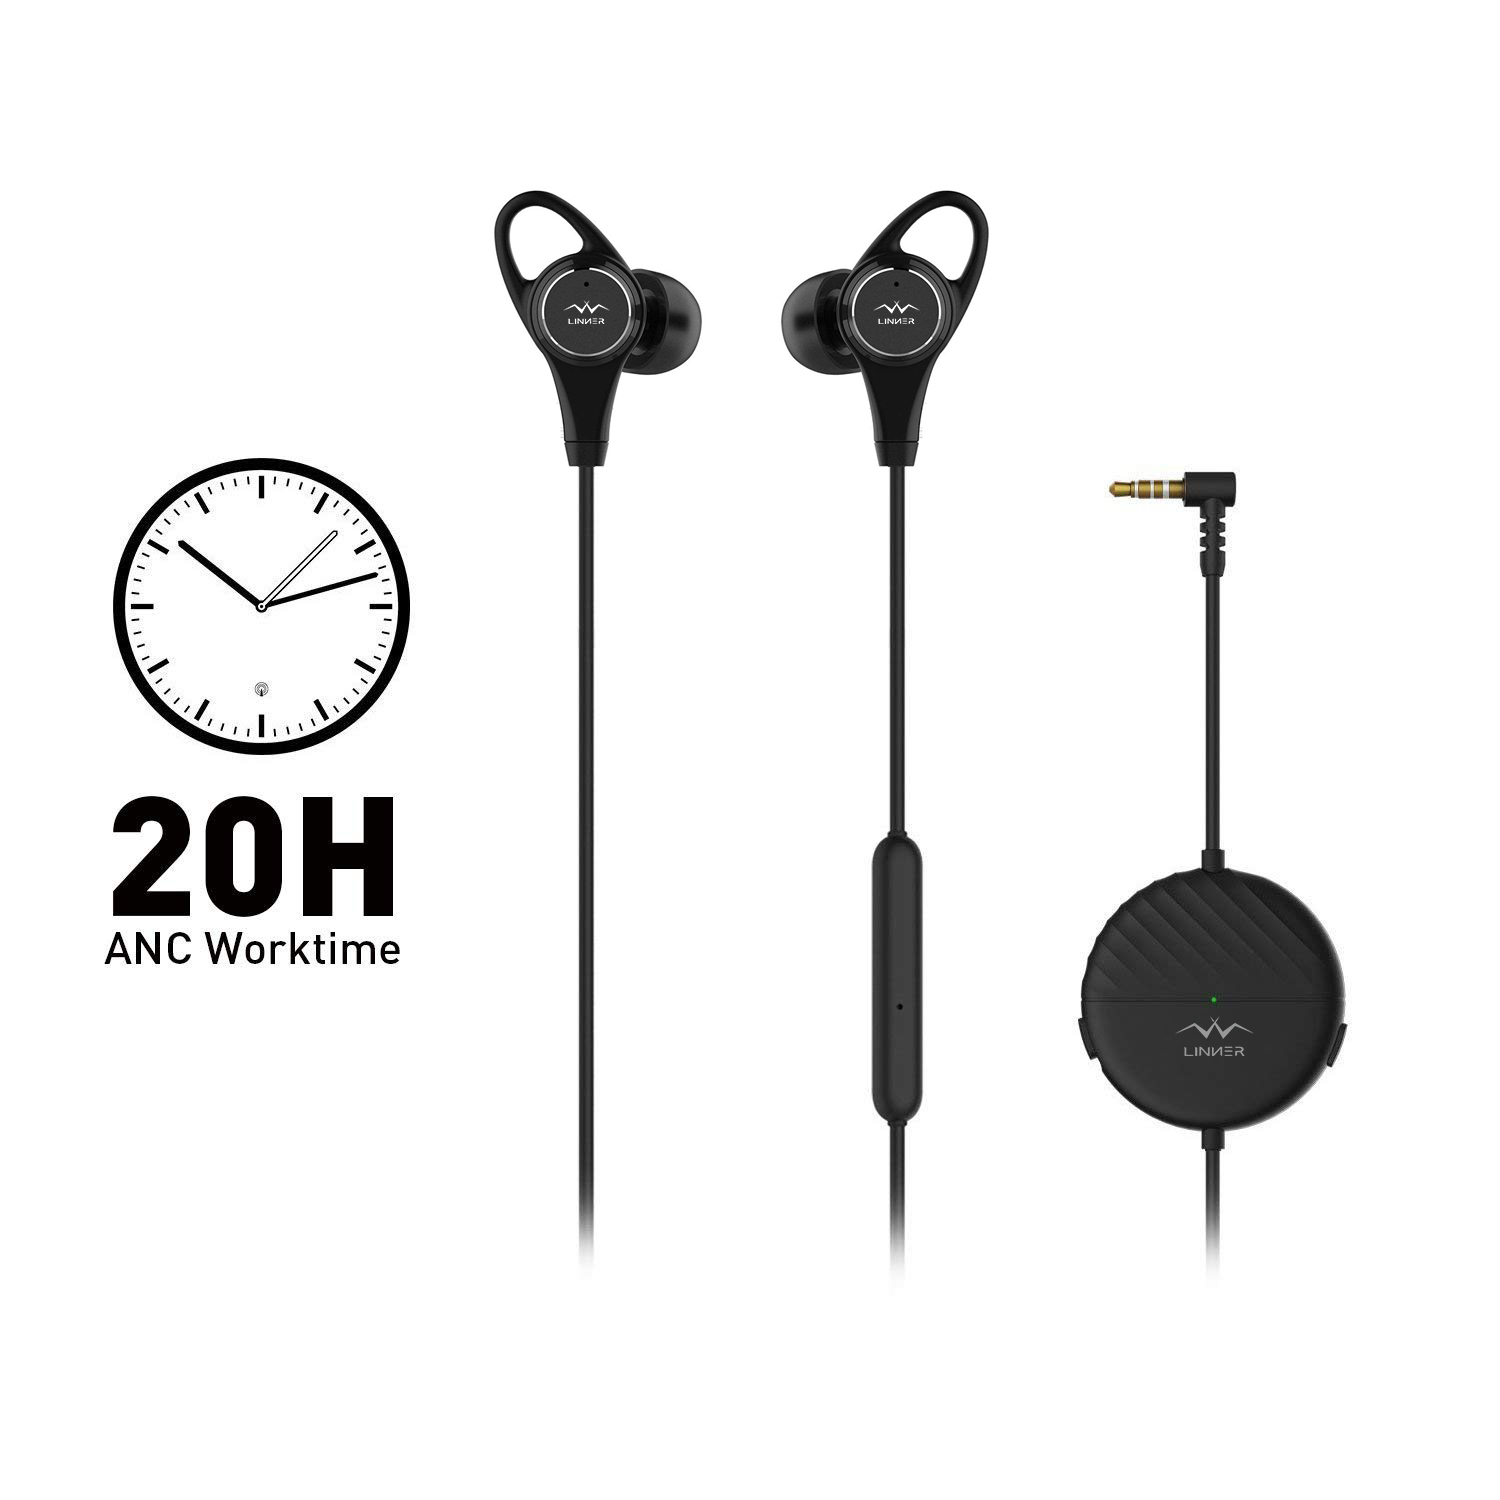 Long battery life - Enhanced battery life, enjoy 20 hours of continuous music playback or voice chat with ANC on per 2 hours of charge.